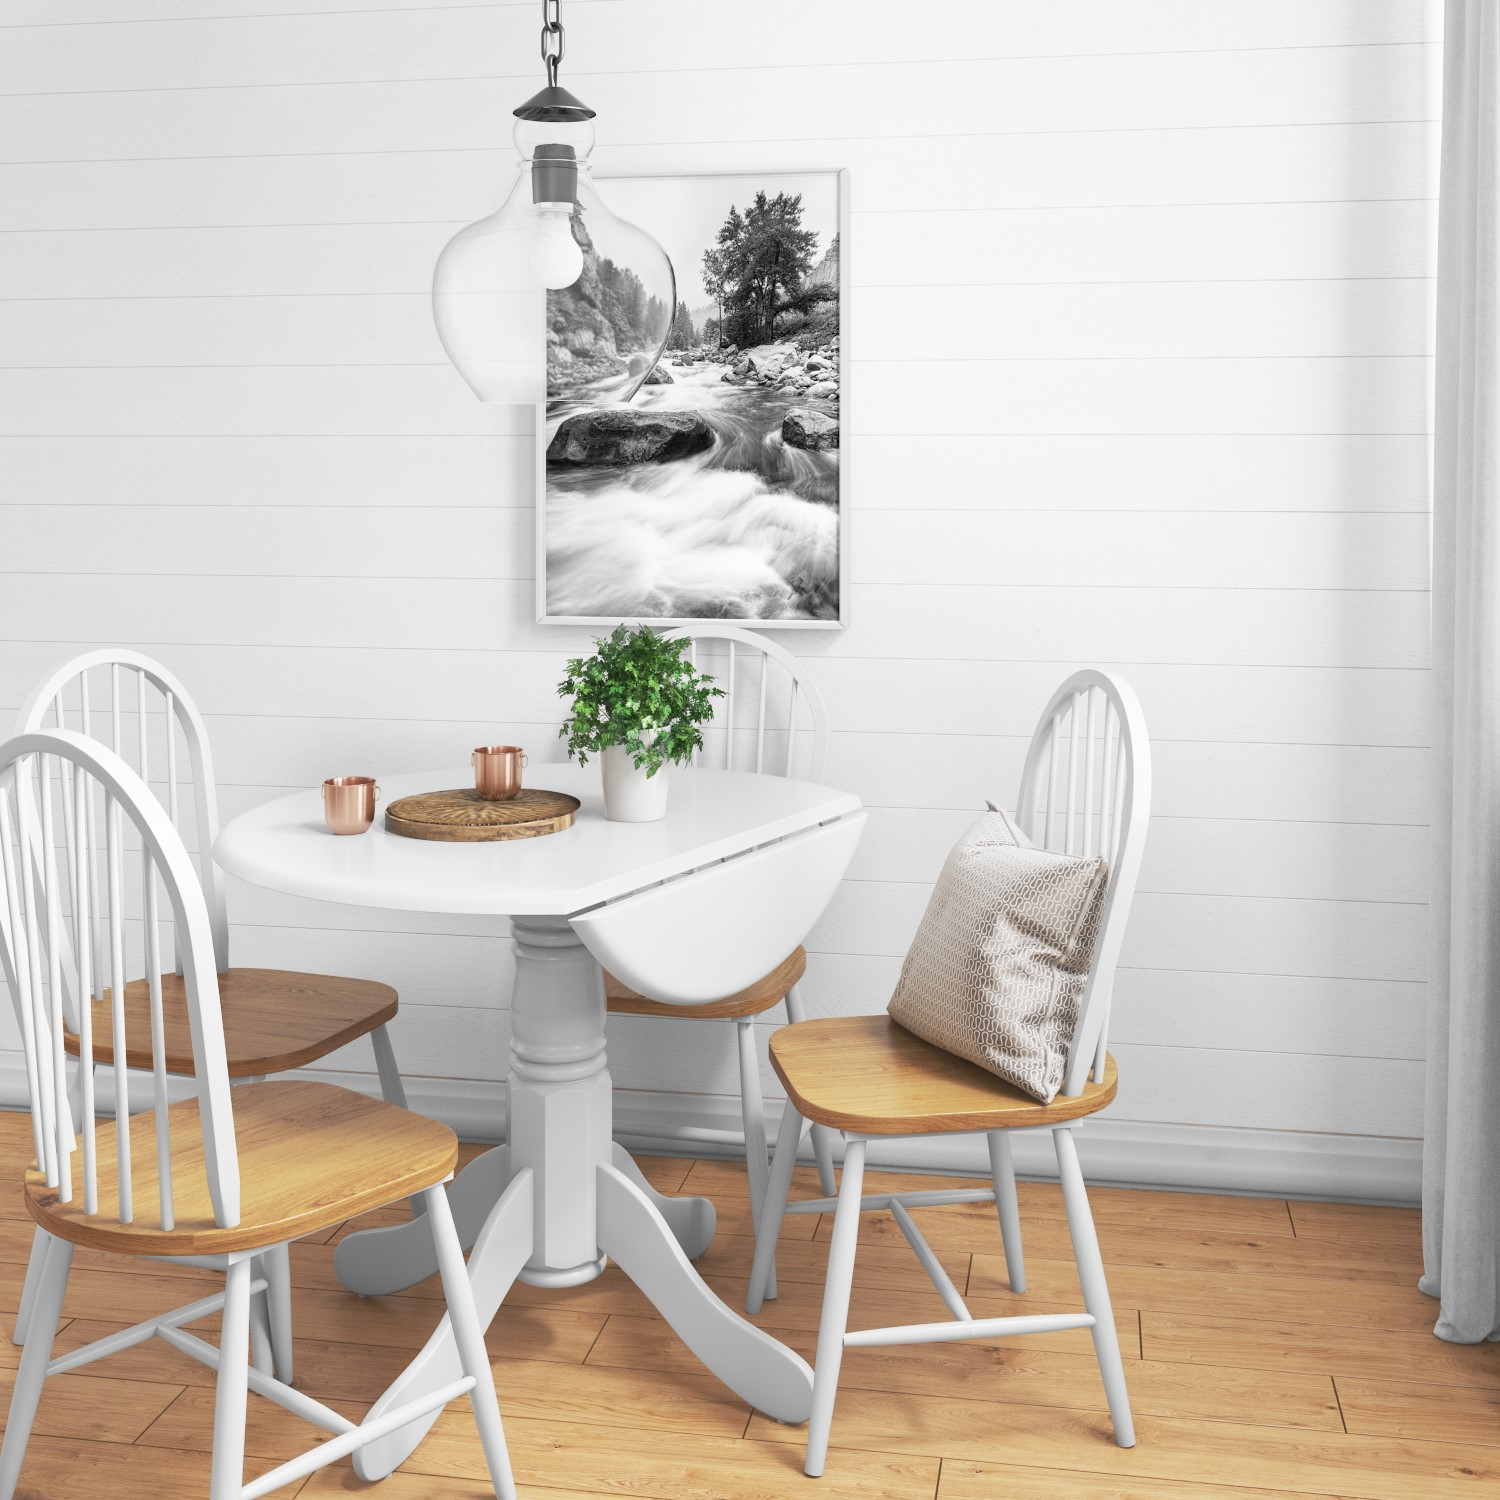 Drop Leaf 4 Seater Round Dining Table in White - 4 Seater ...